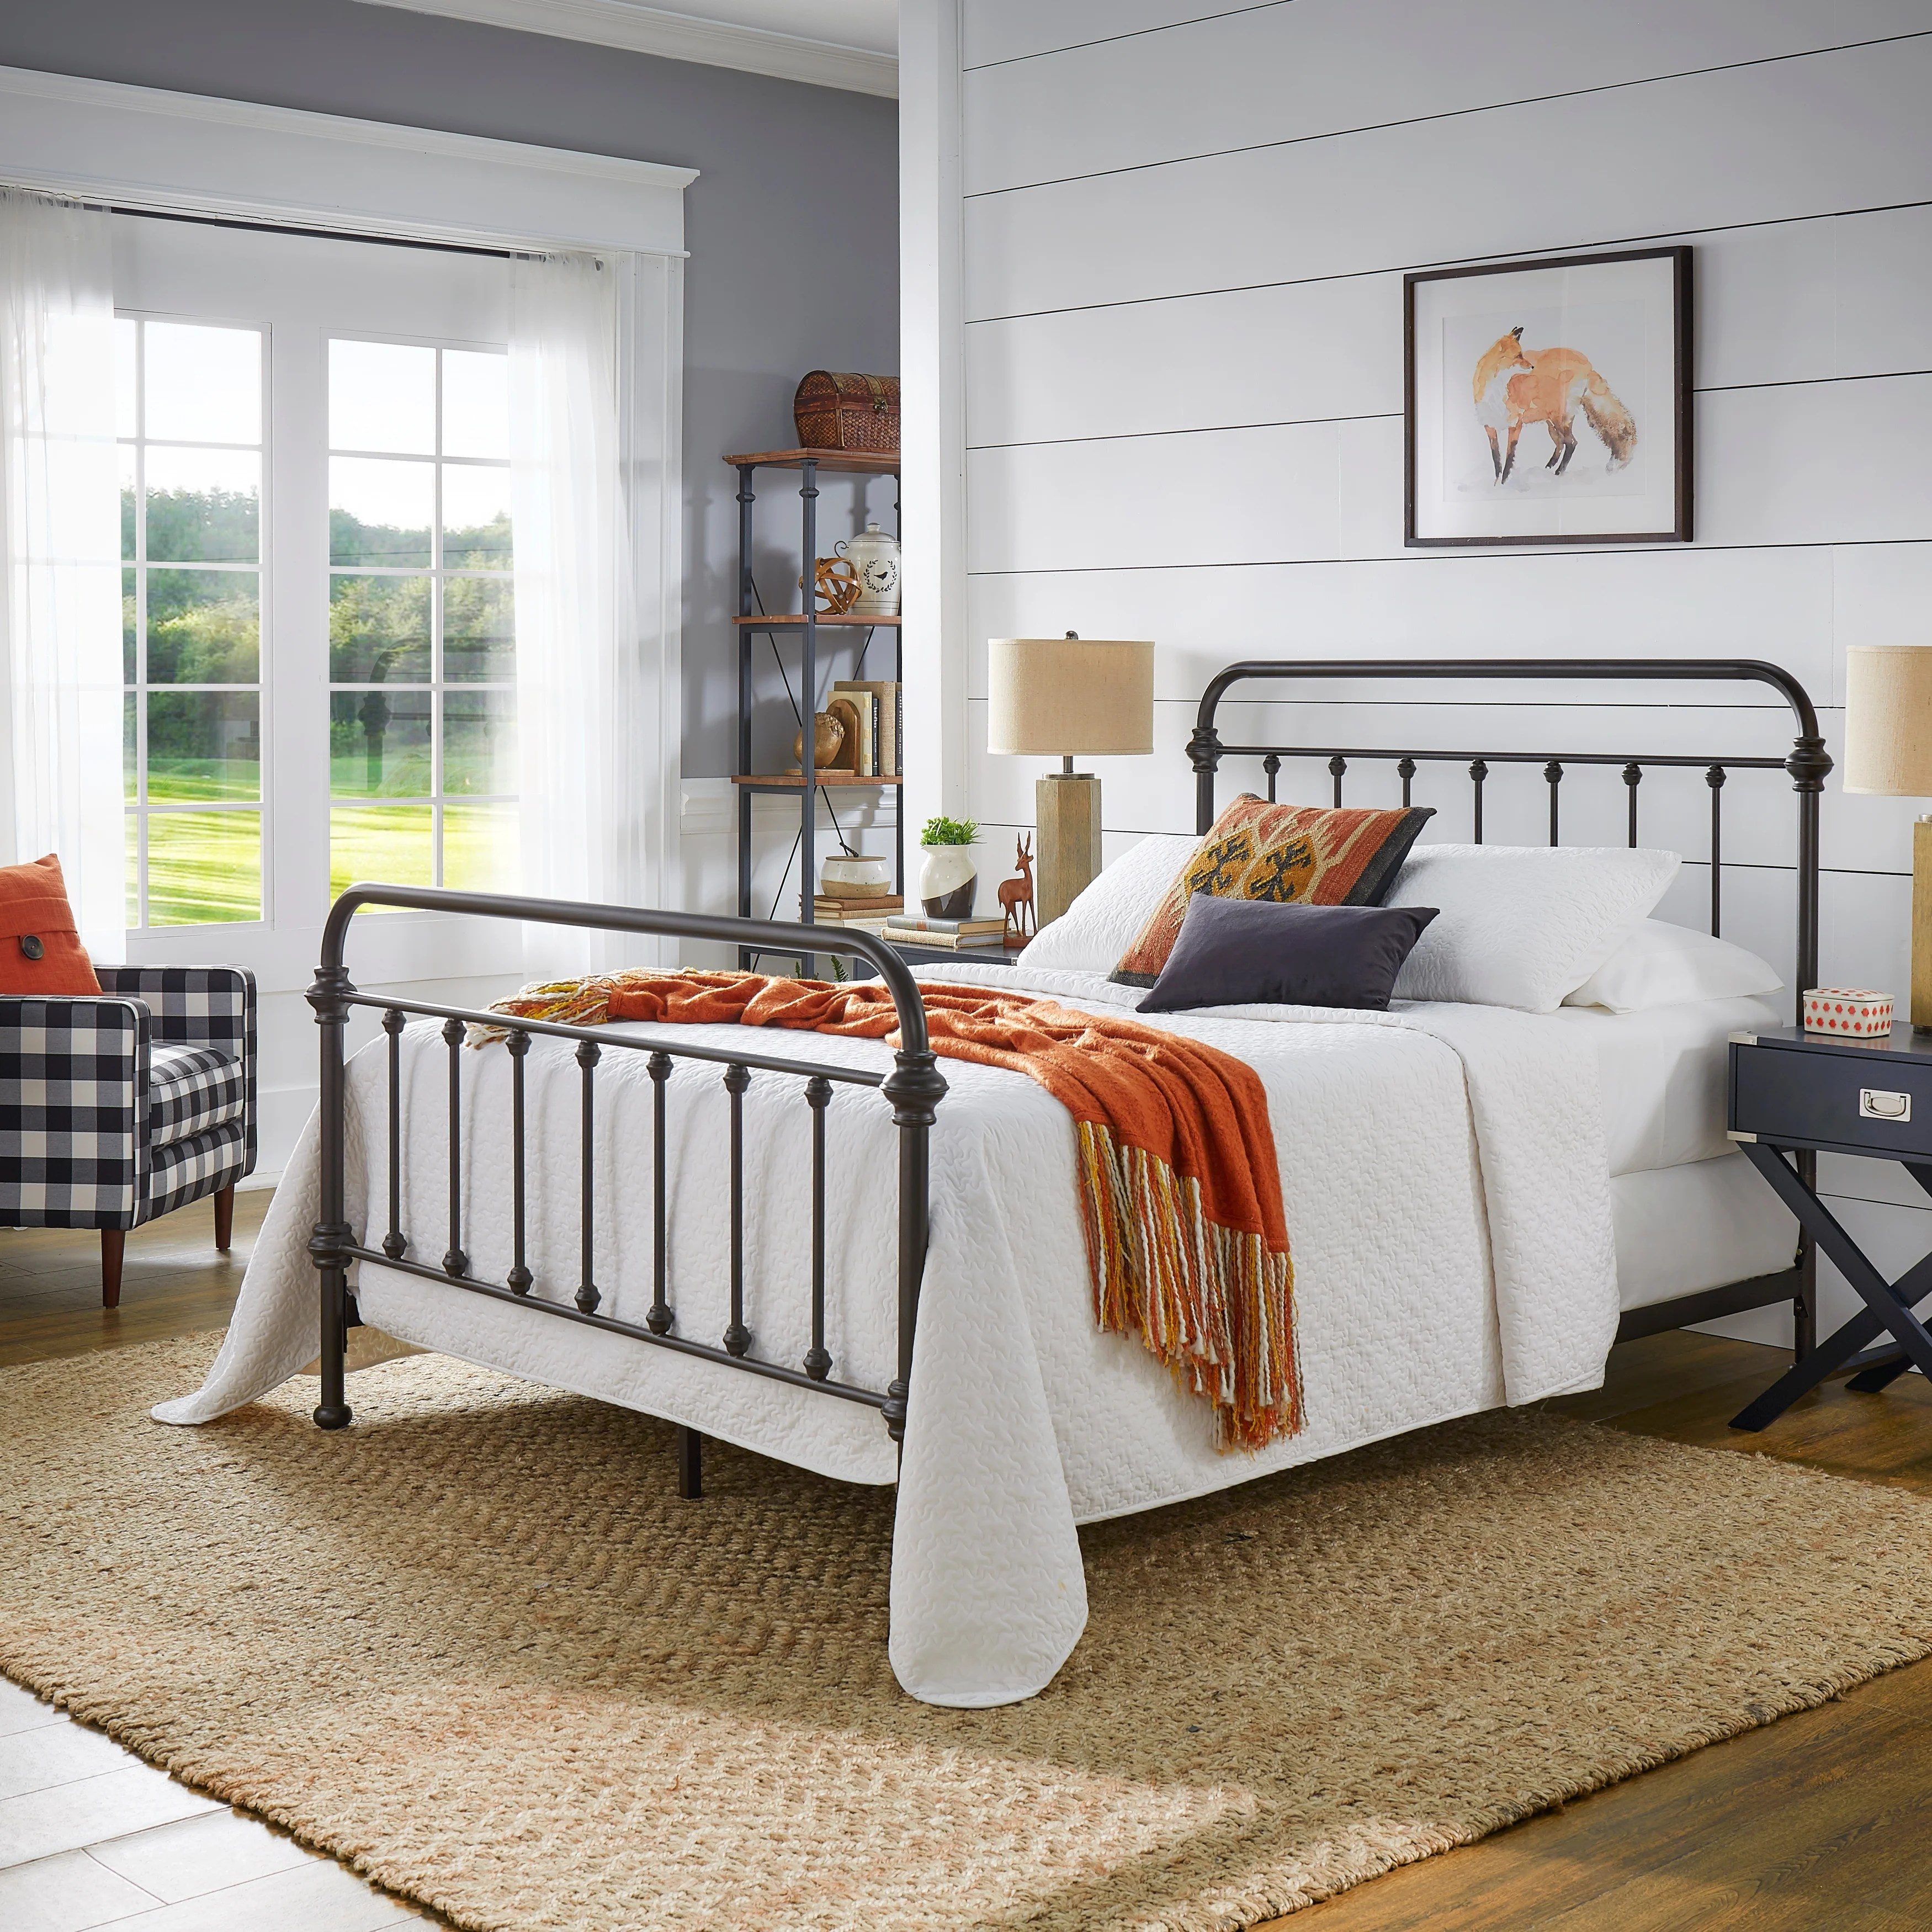 Giselle Antique Graceful Dark Bronze Victorian Iron Bed By Inspire Q Classic On Sale Overstock 7720291